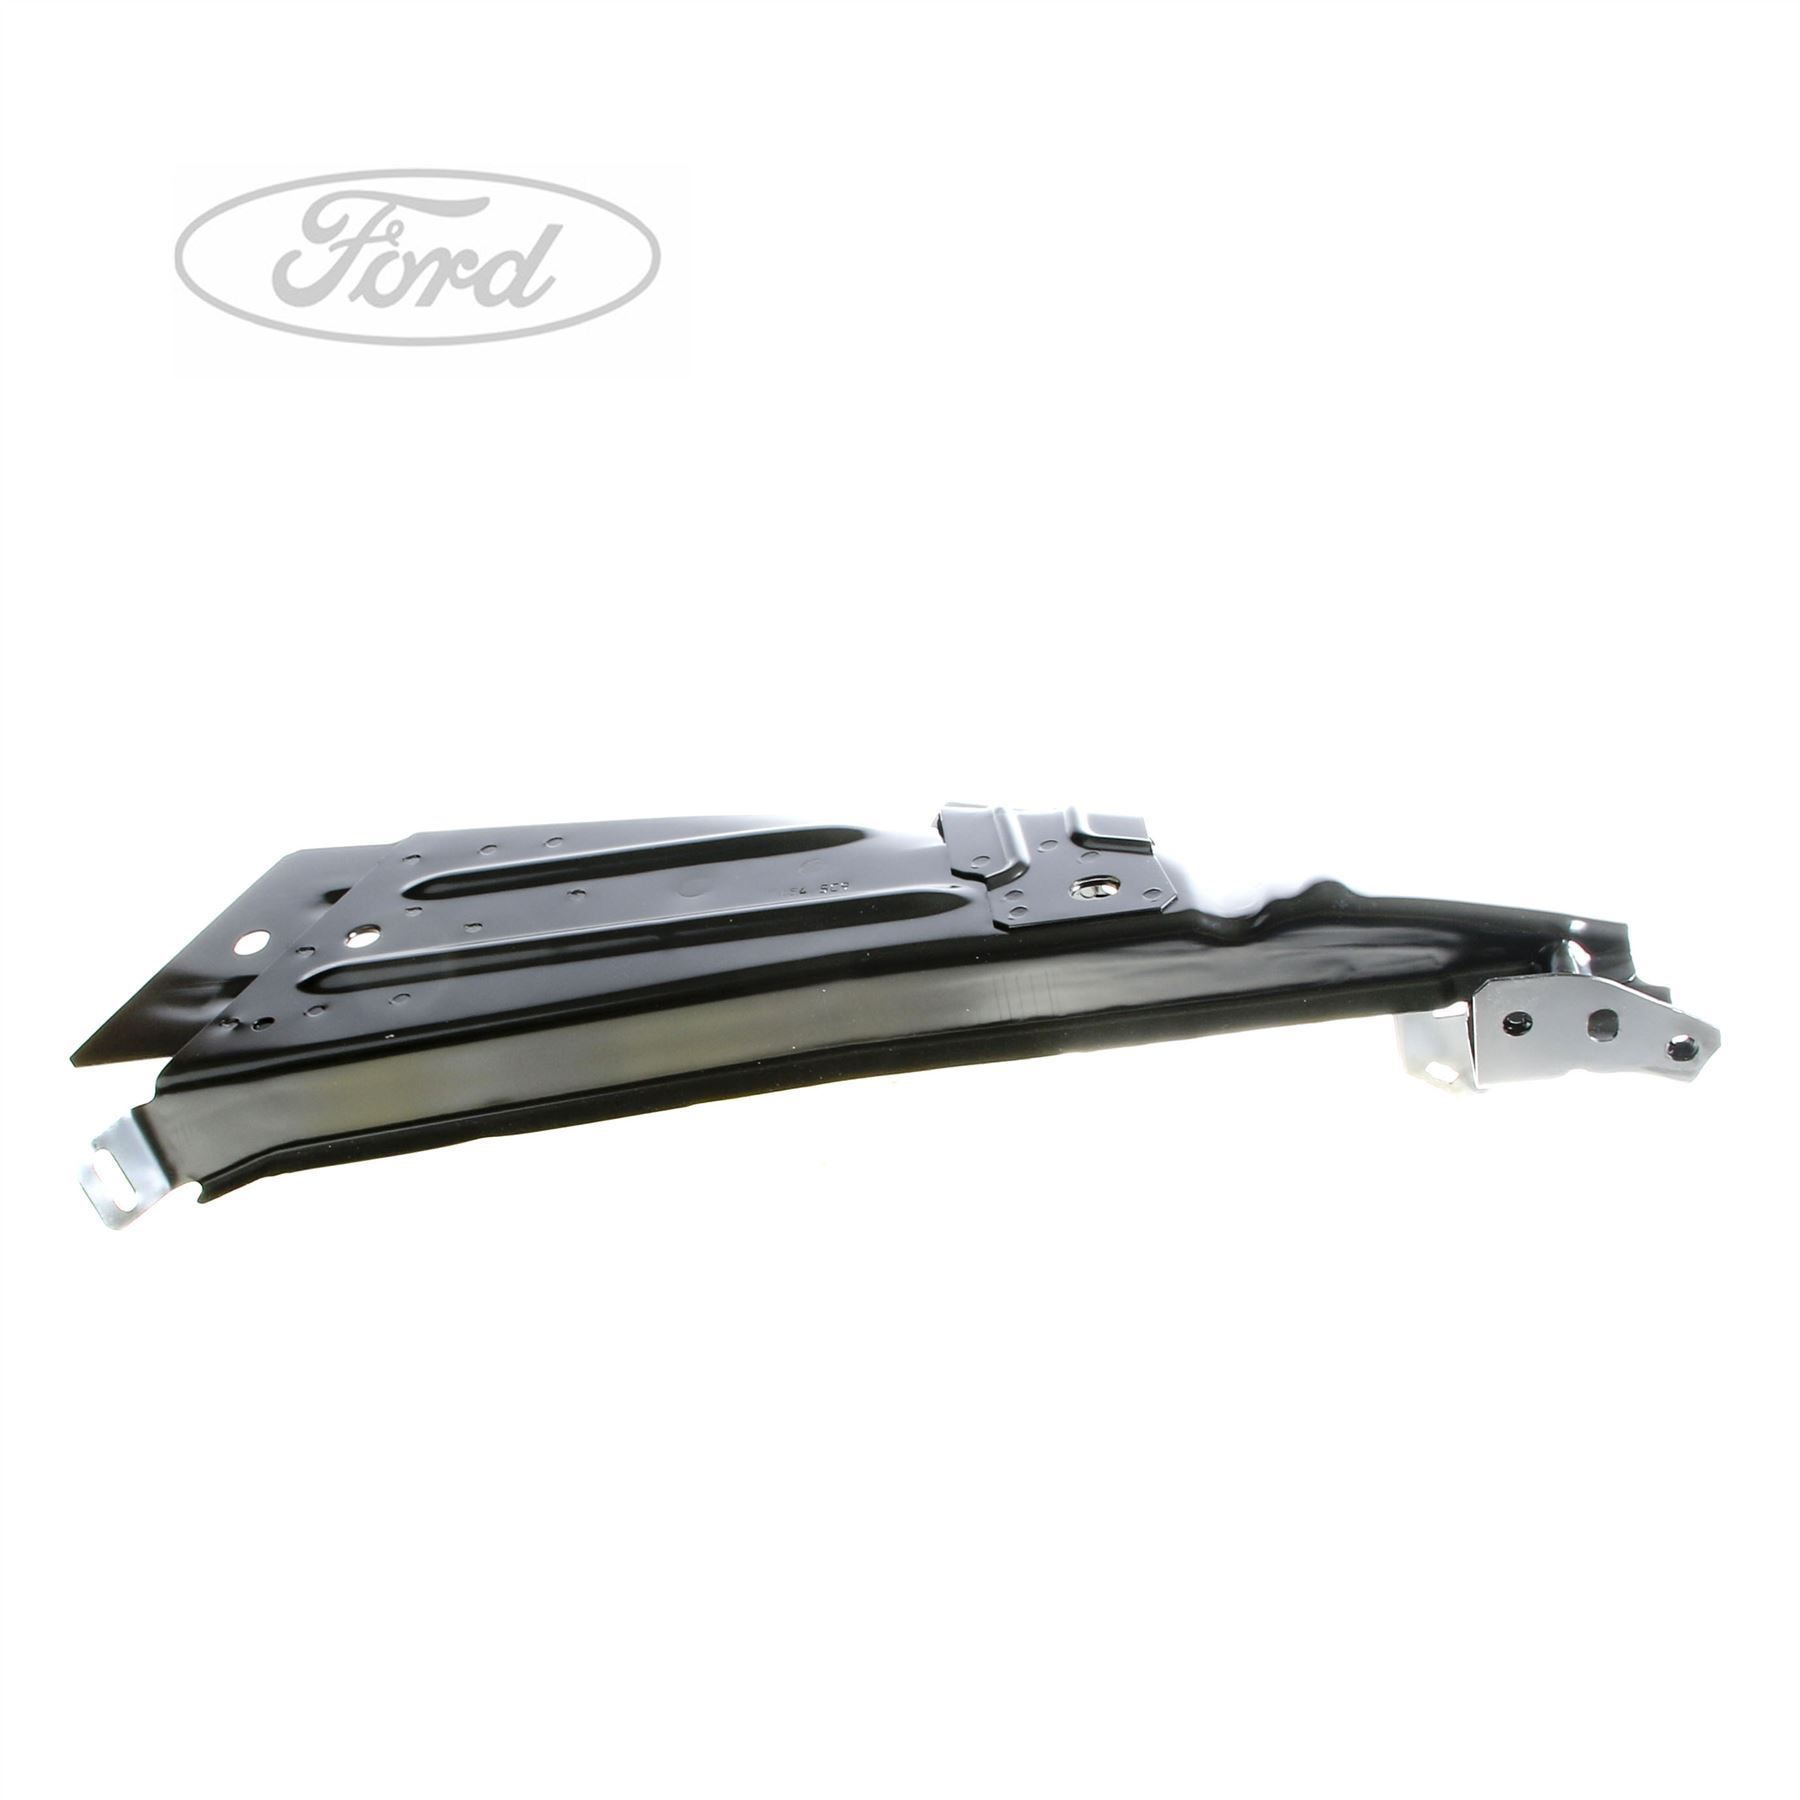 hight resolution of details about genuine ford ka o s front side member panel extension 1558796